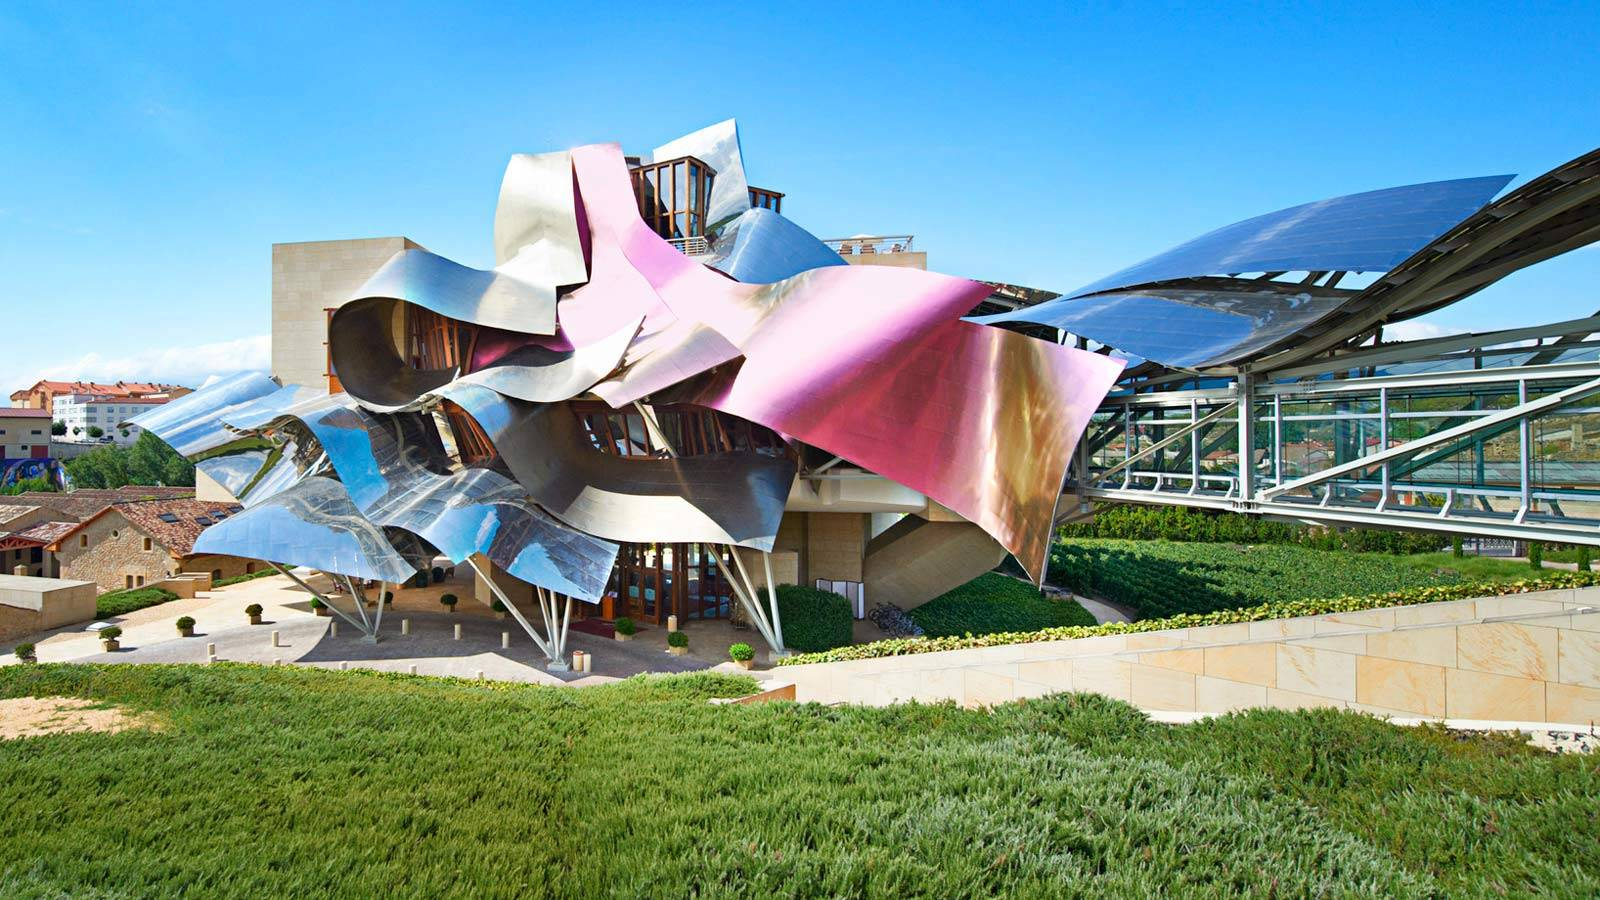 Hotel Marques de Riscal, Where The Art of Wine Making Meets Avant-garde Design Graced By Luxury